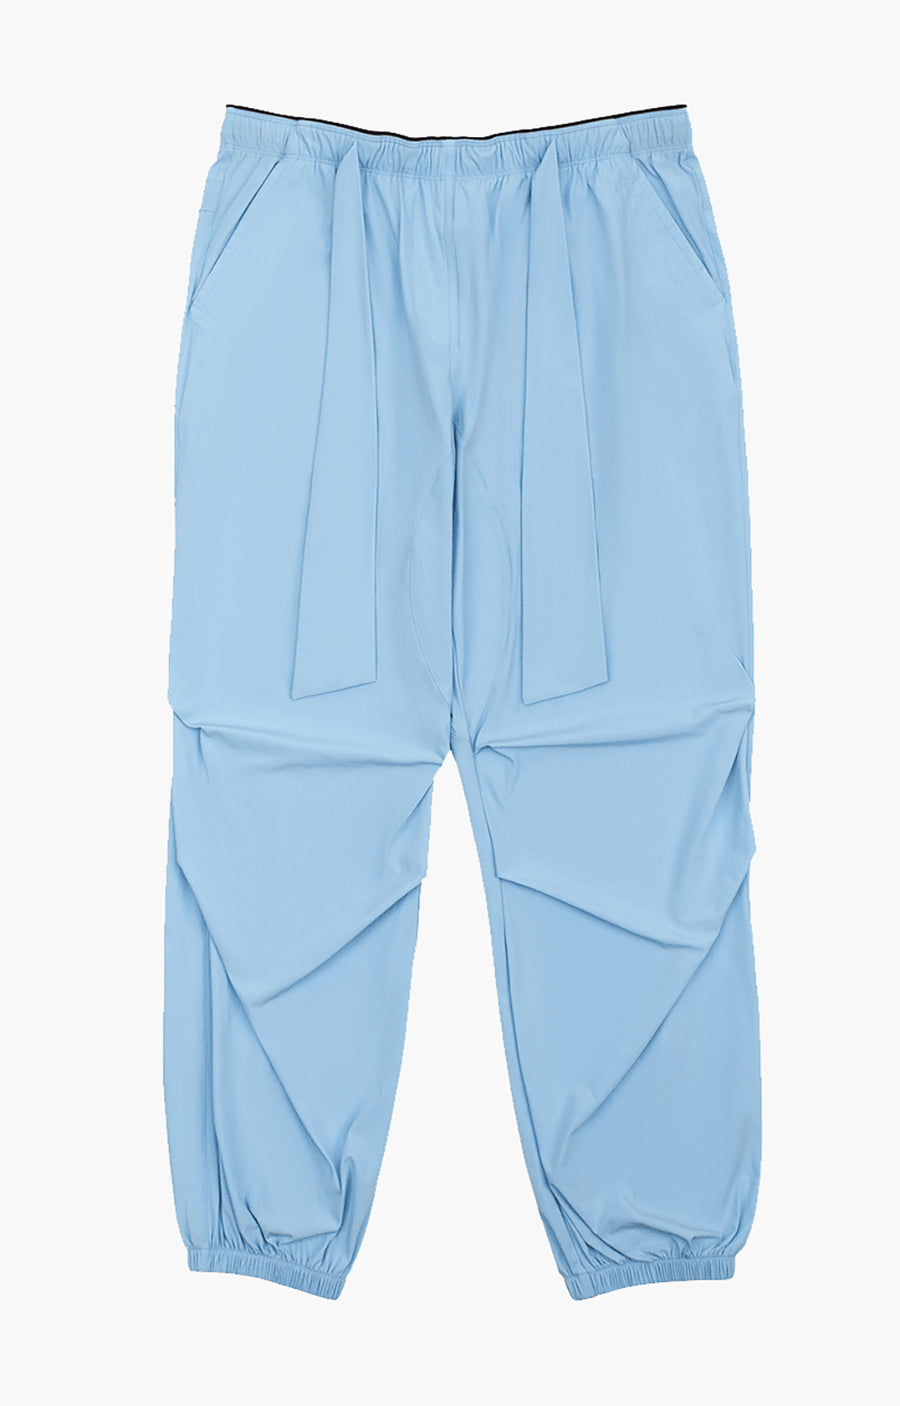 Serene - Ultra Comfortable Travel Pants in Light Blue